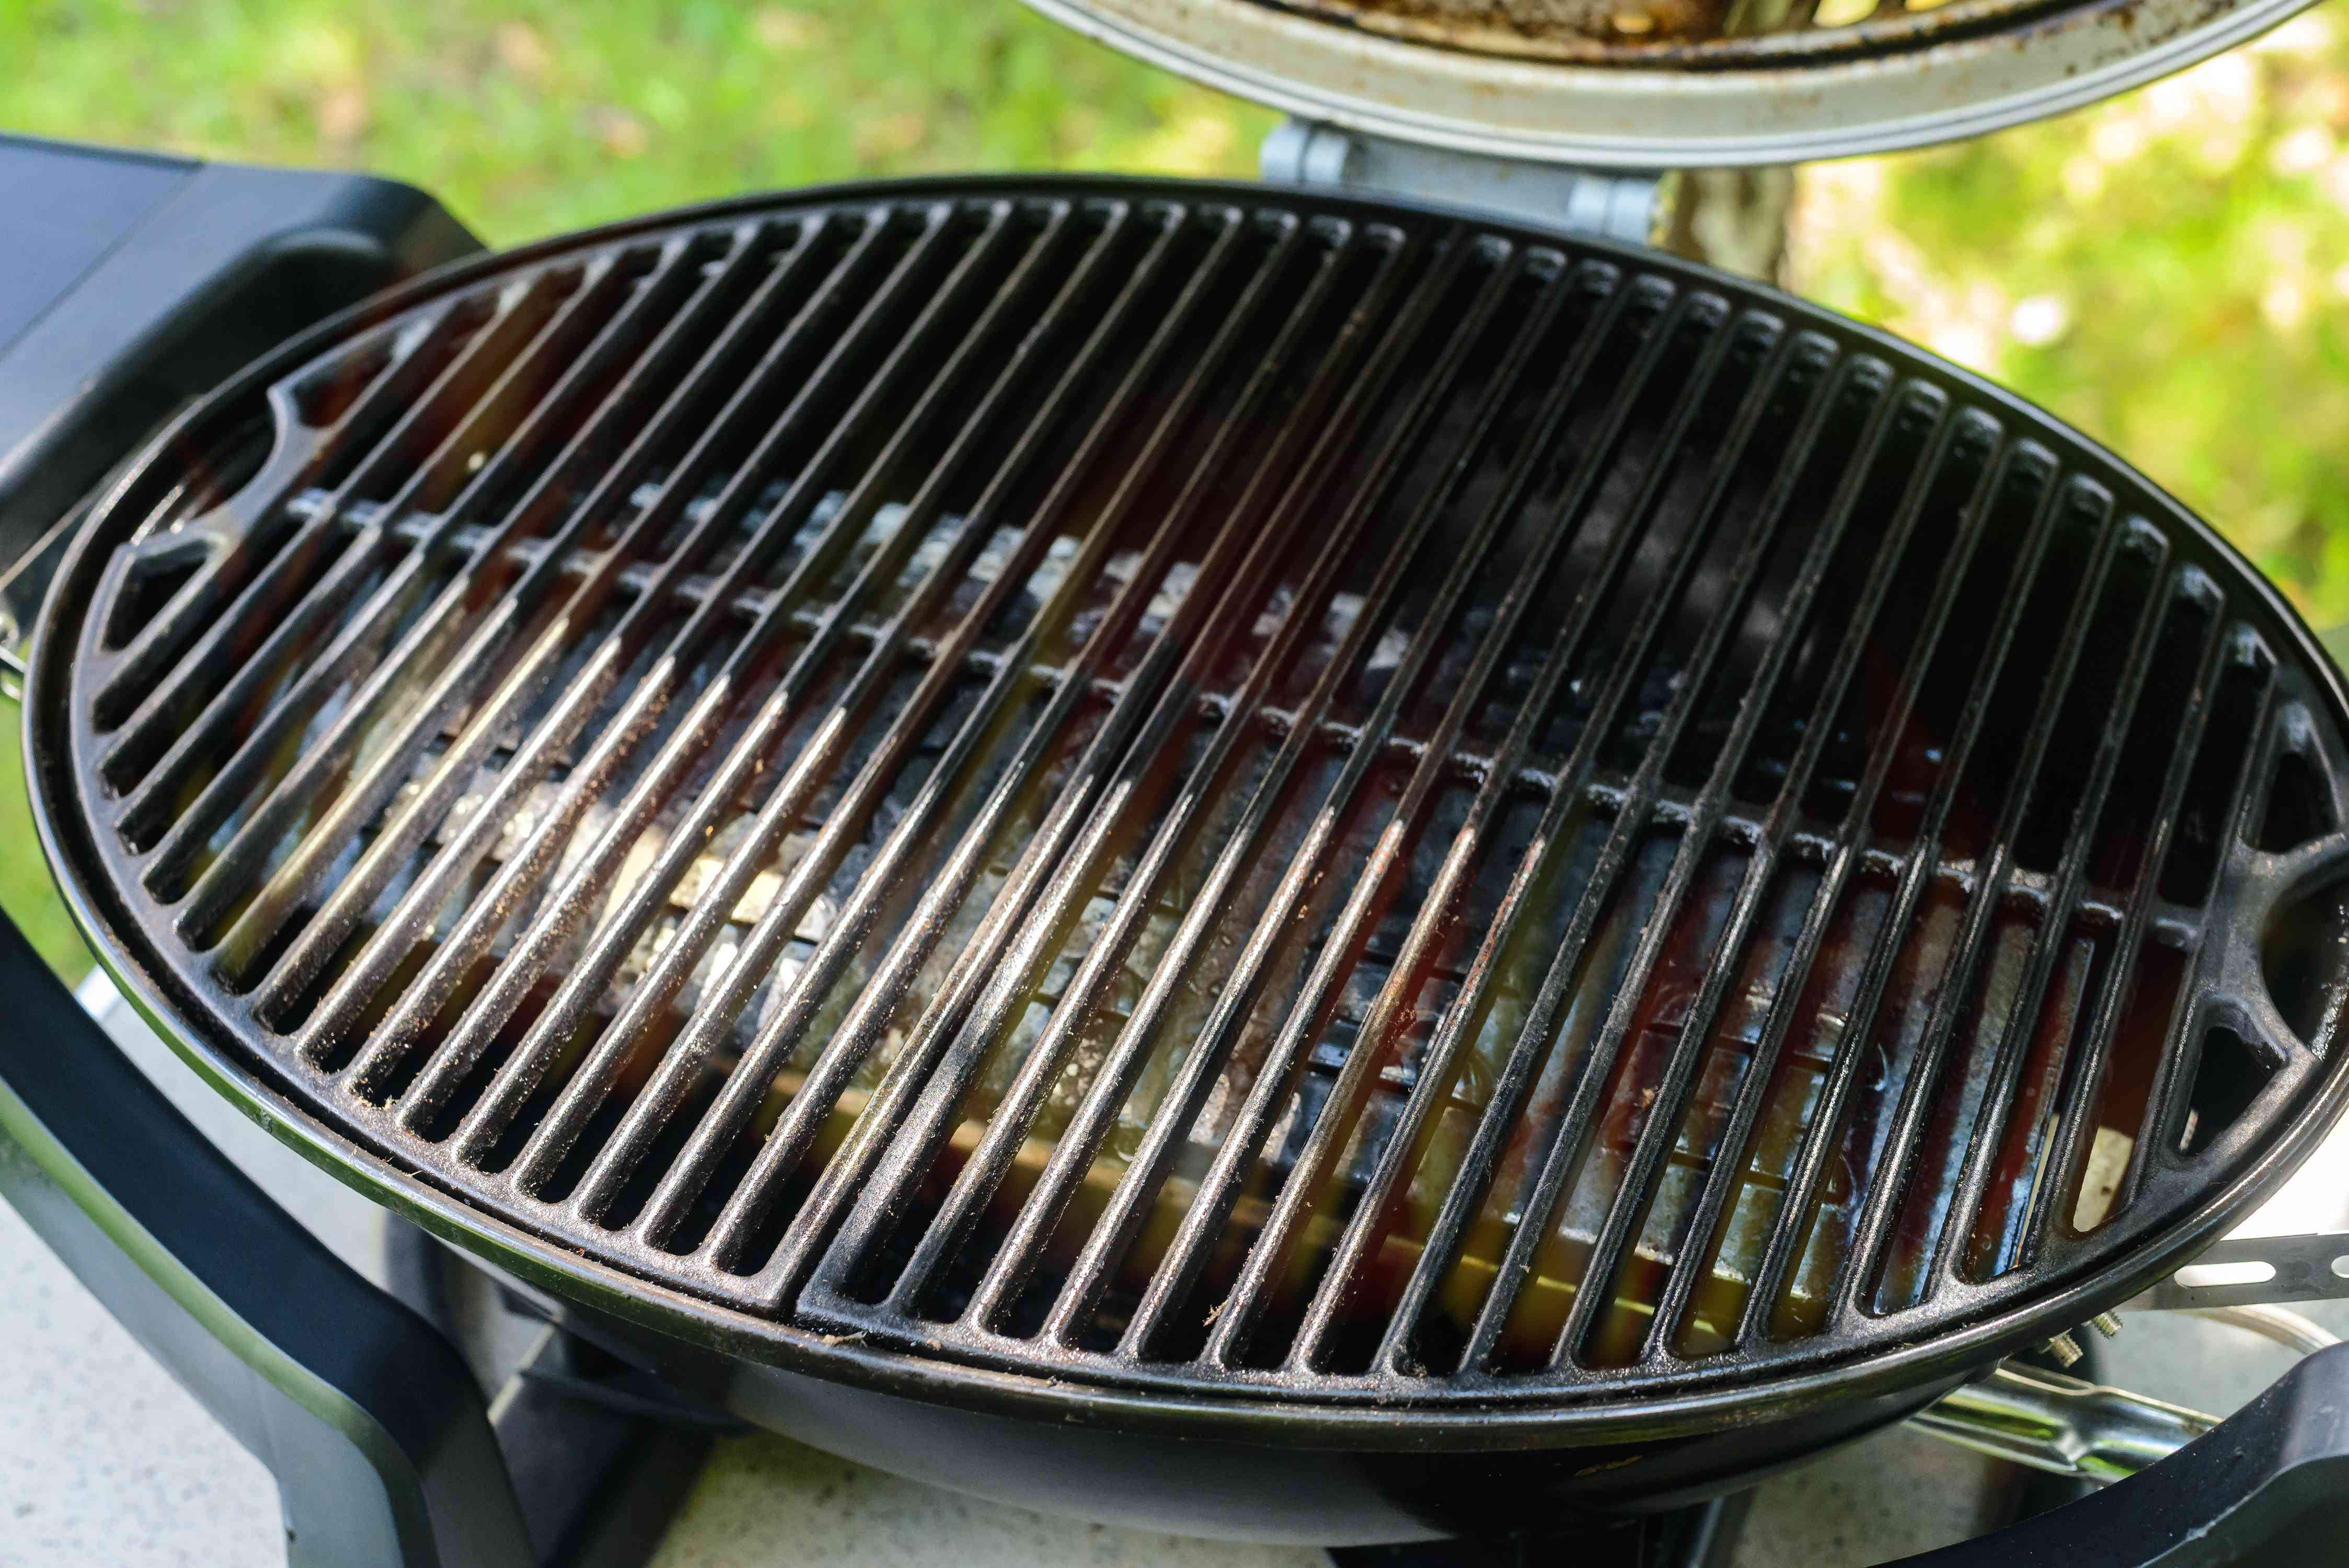 Grill preheating